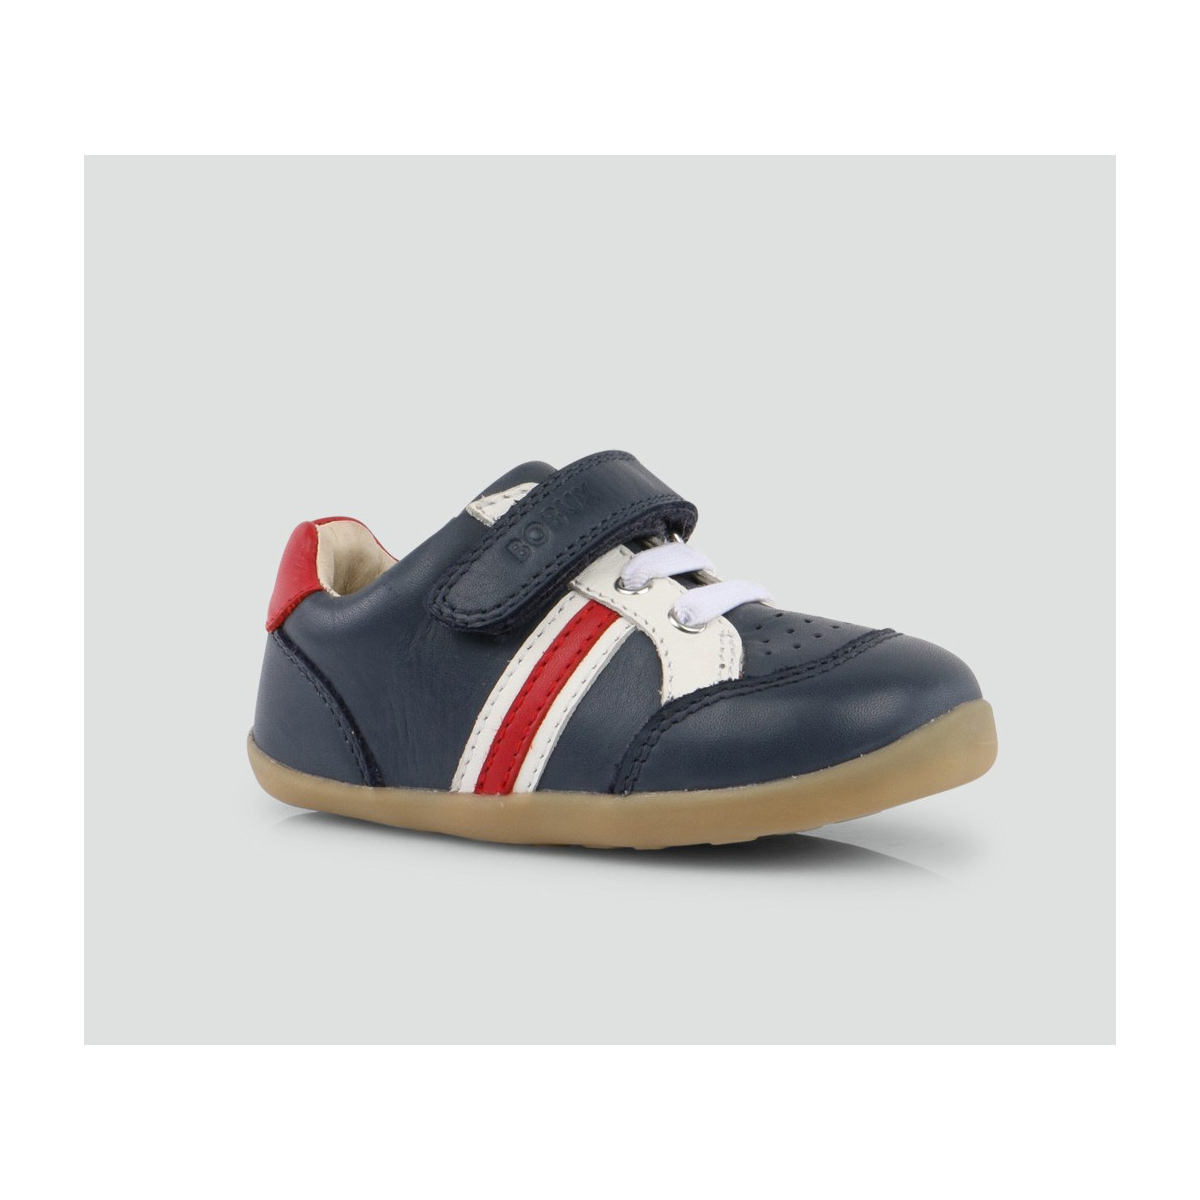 Chaussures Step Up - Trackside Navy 723701 - SeBio 4417348c9d4